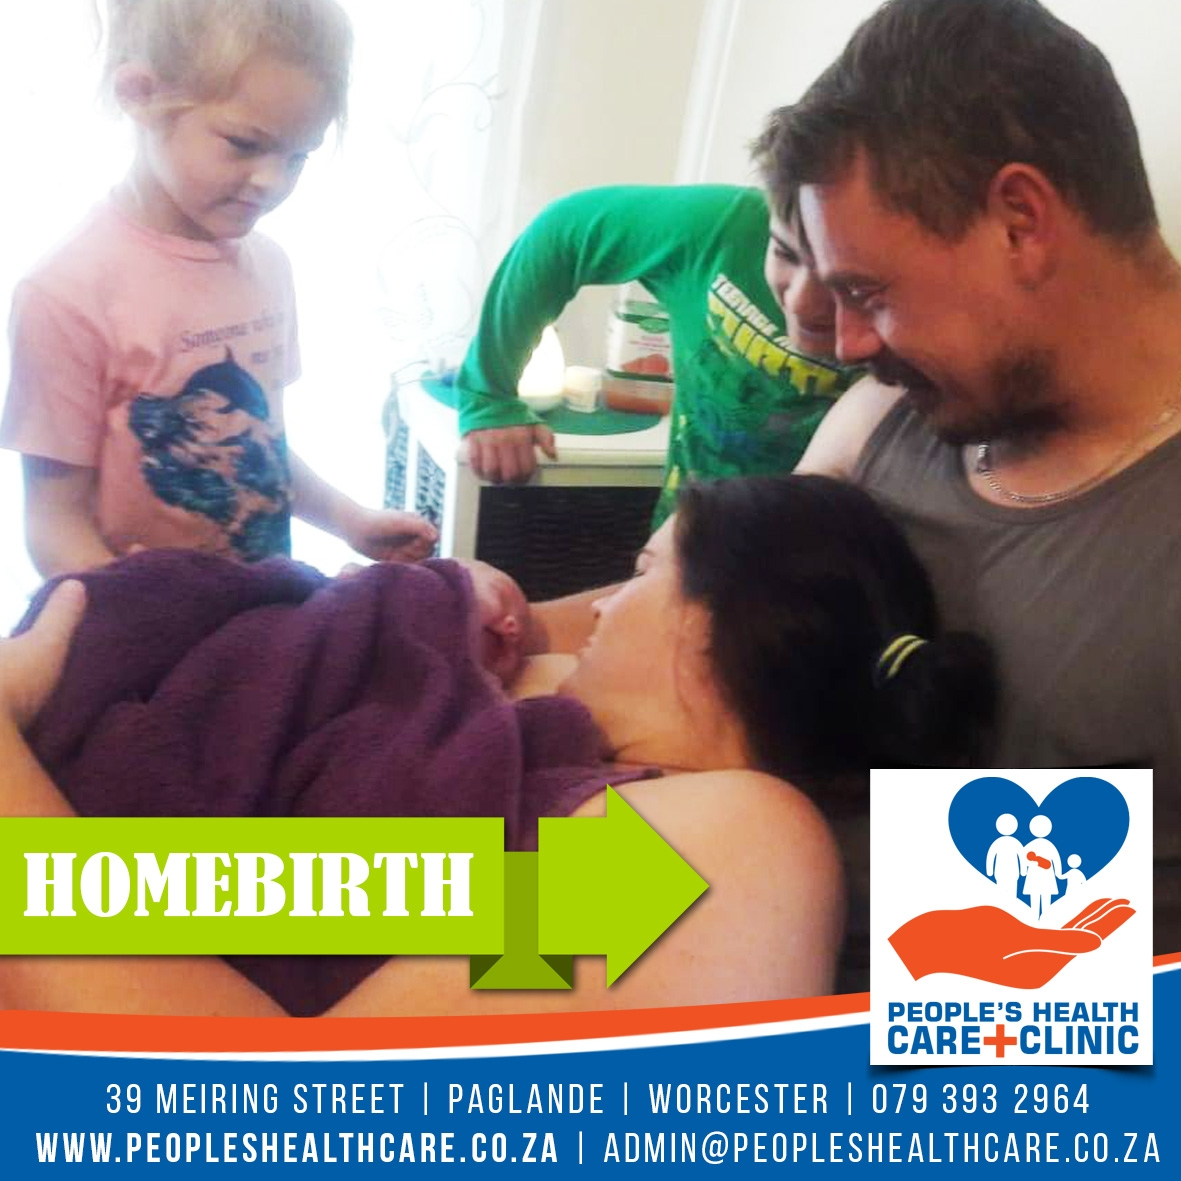 peoples-health-care-clinic-worcester-homebirth1